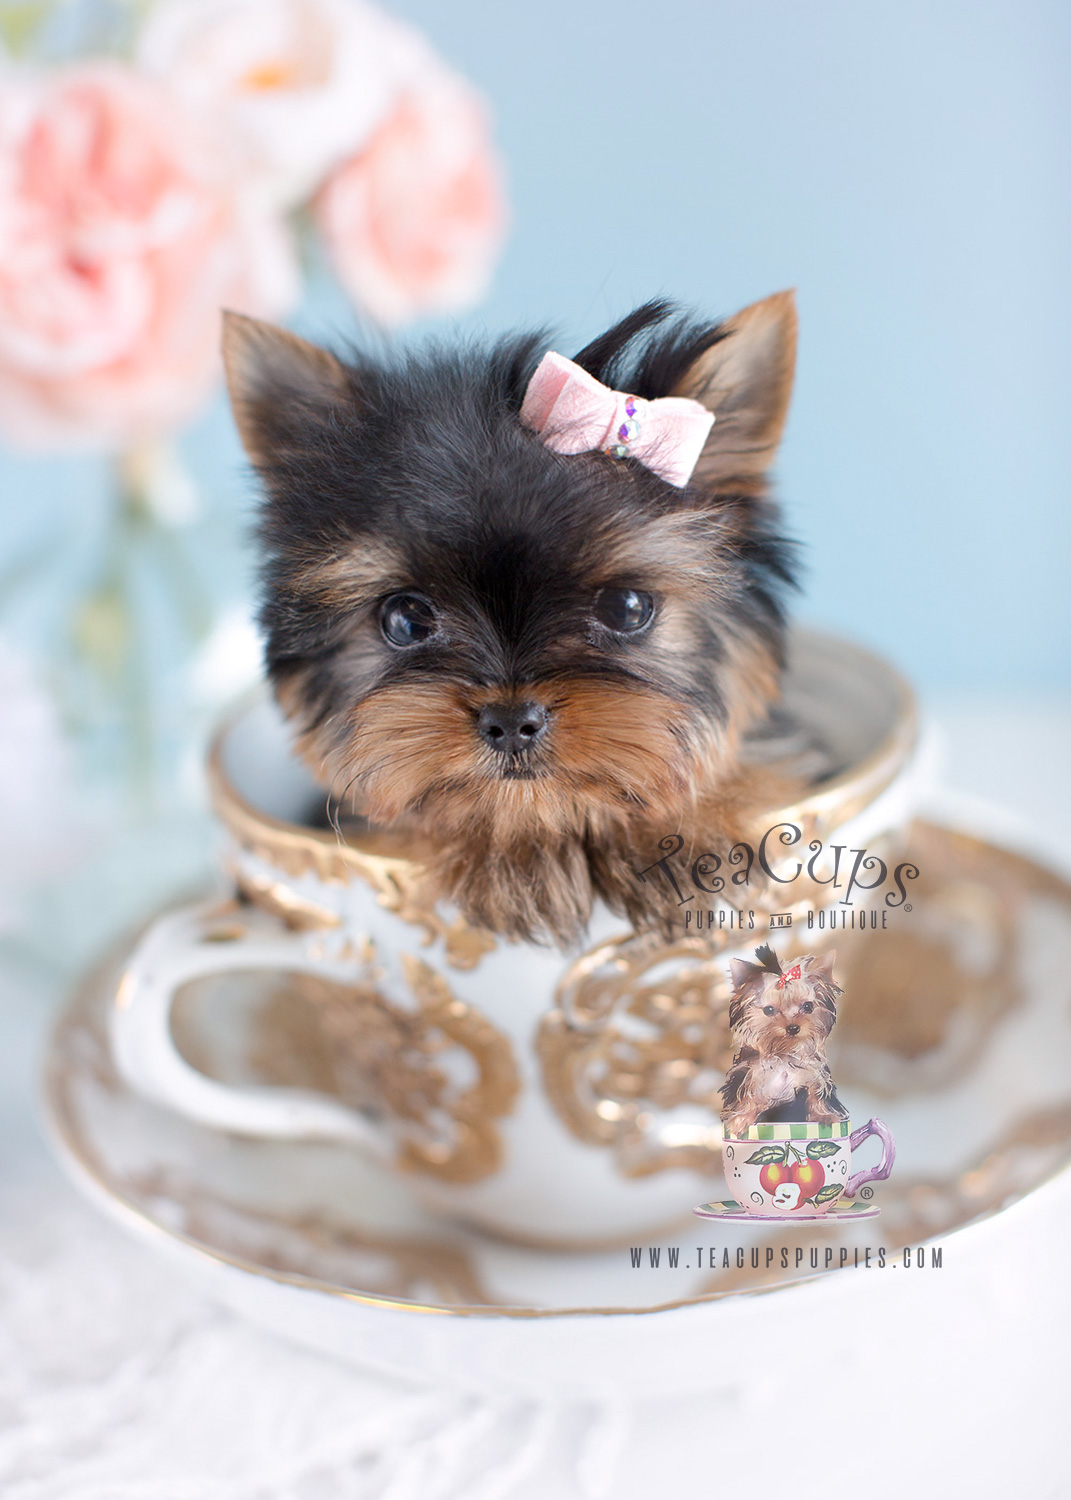 Tiny Teacup Yorkie Puppies For Sale Near Me Cheap : teacup, yorkie, puppies, cheap, Teacup, Yorkie, Cheap, Online